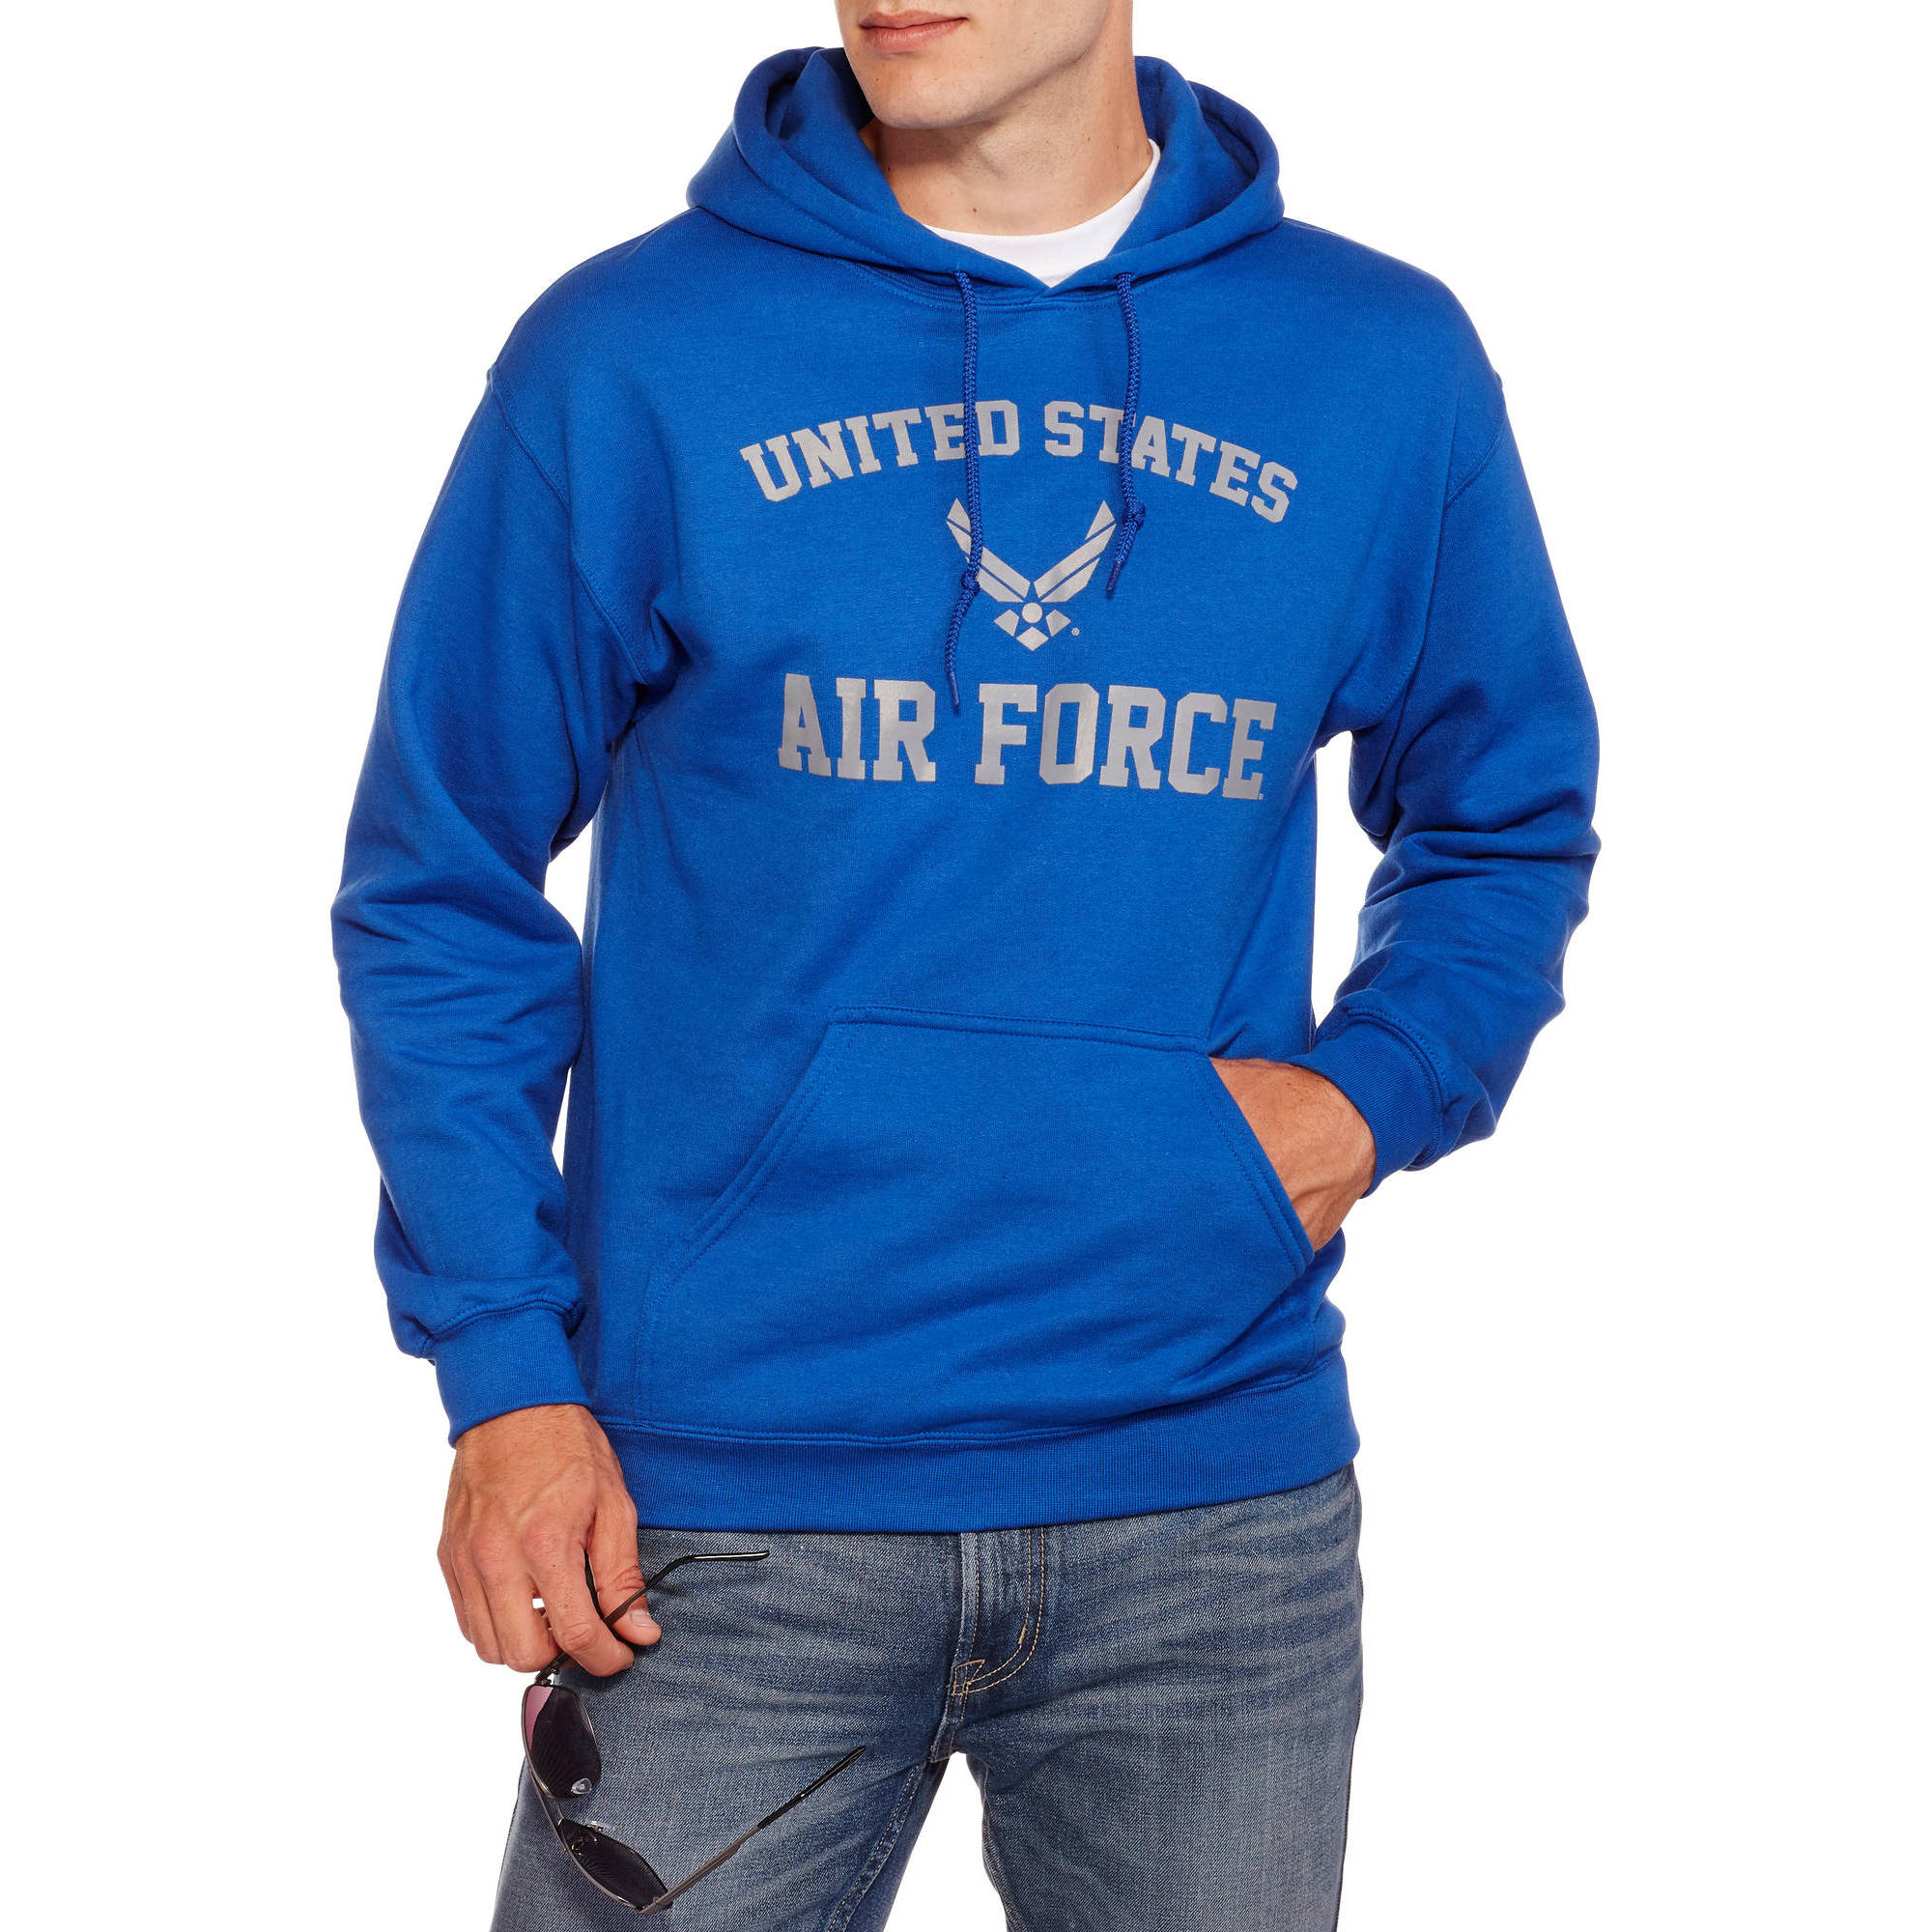 Military Officially Licensed Big Men's Air Force Fleece Hoodie, 2XL